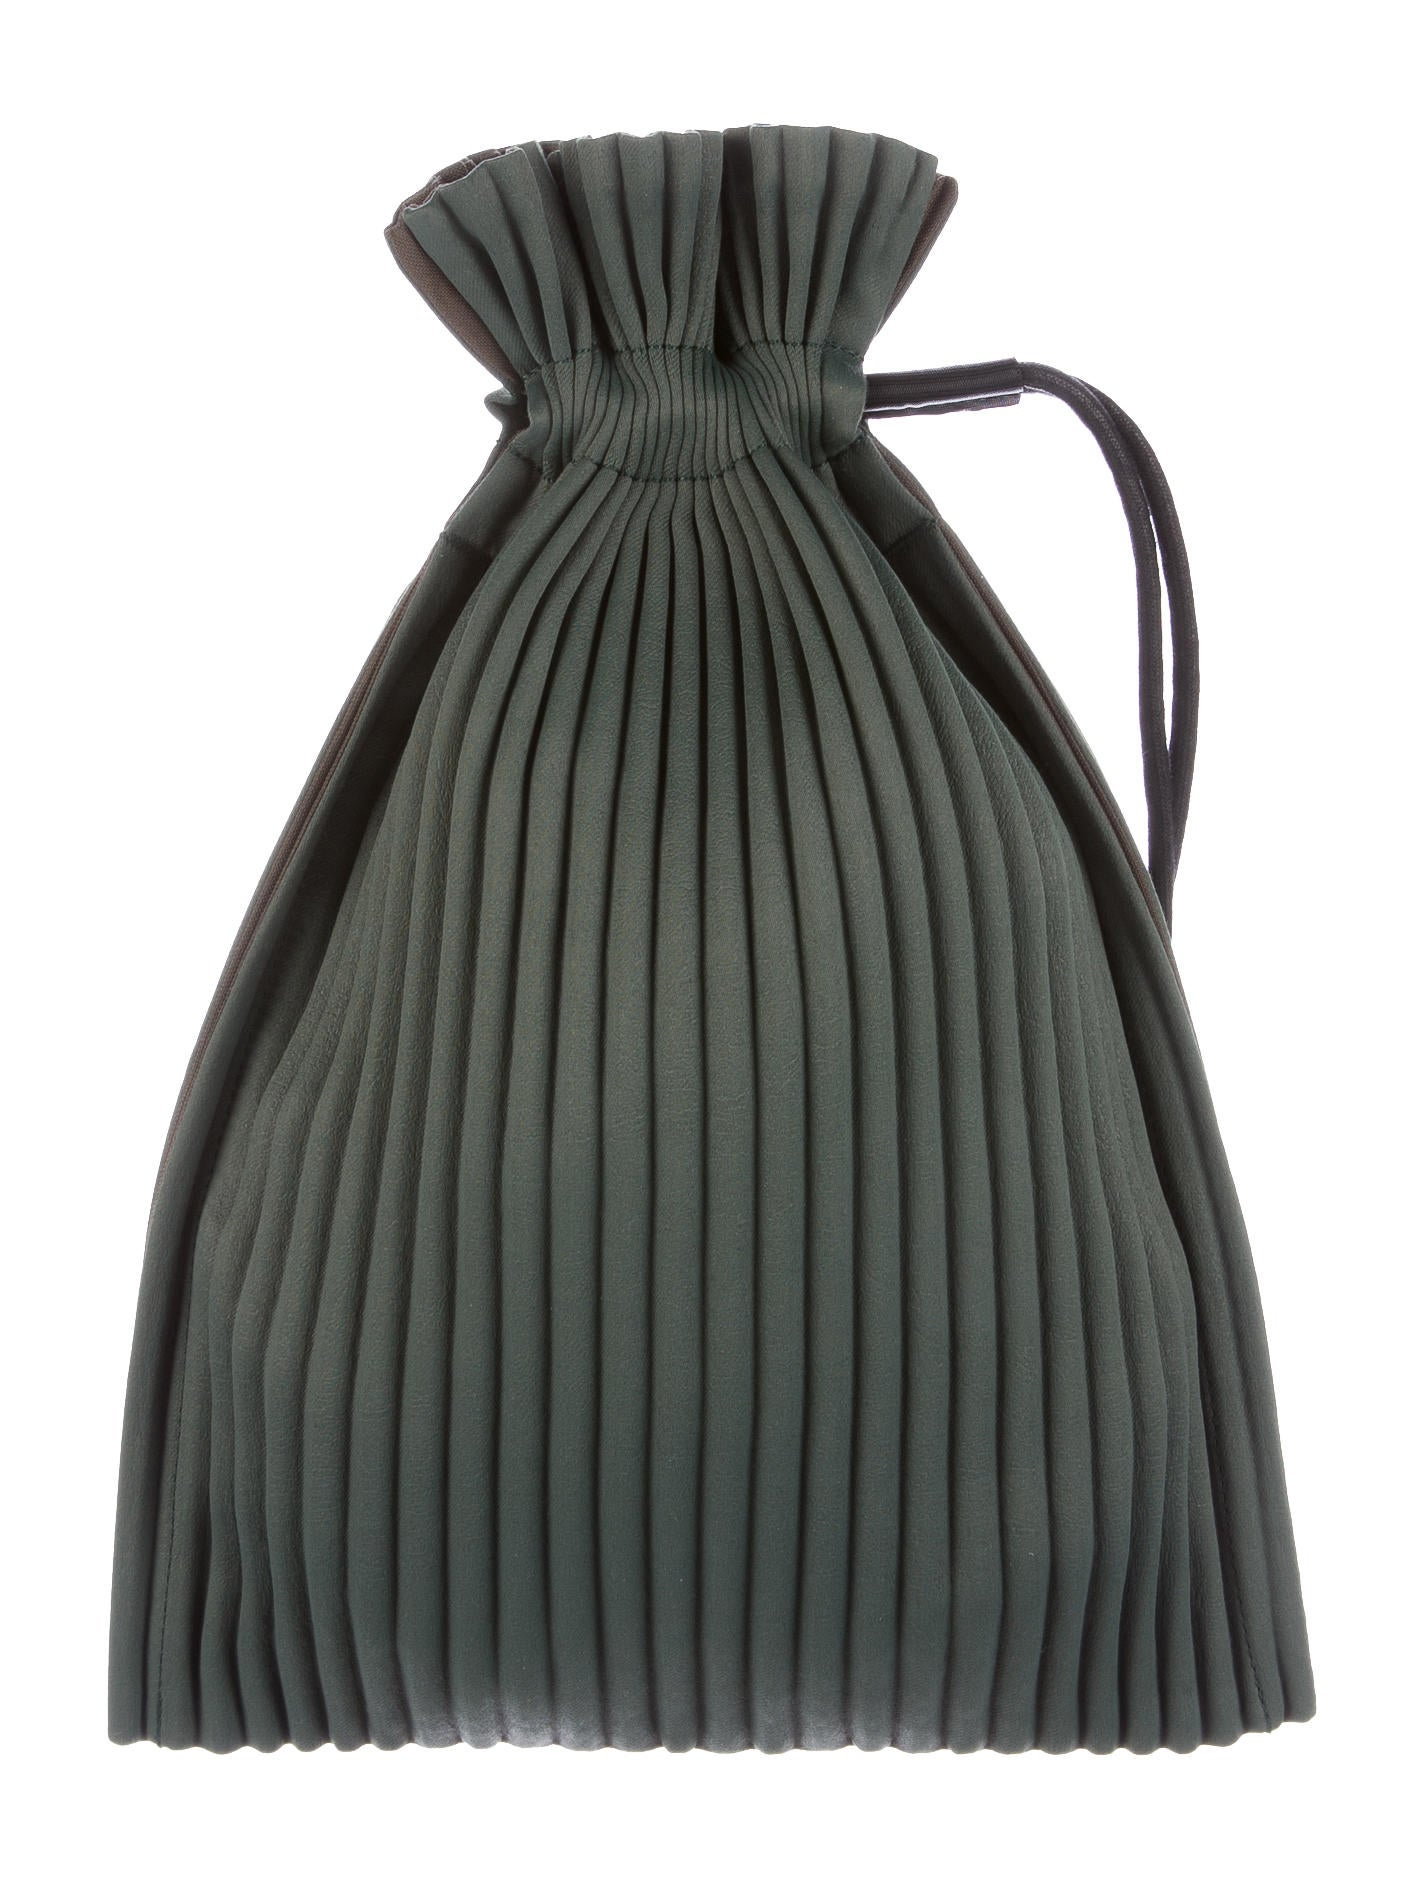 Issey Miyake Pleated Drawstring Bag - Bags - ISS20598 | The RealReal